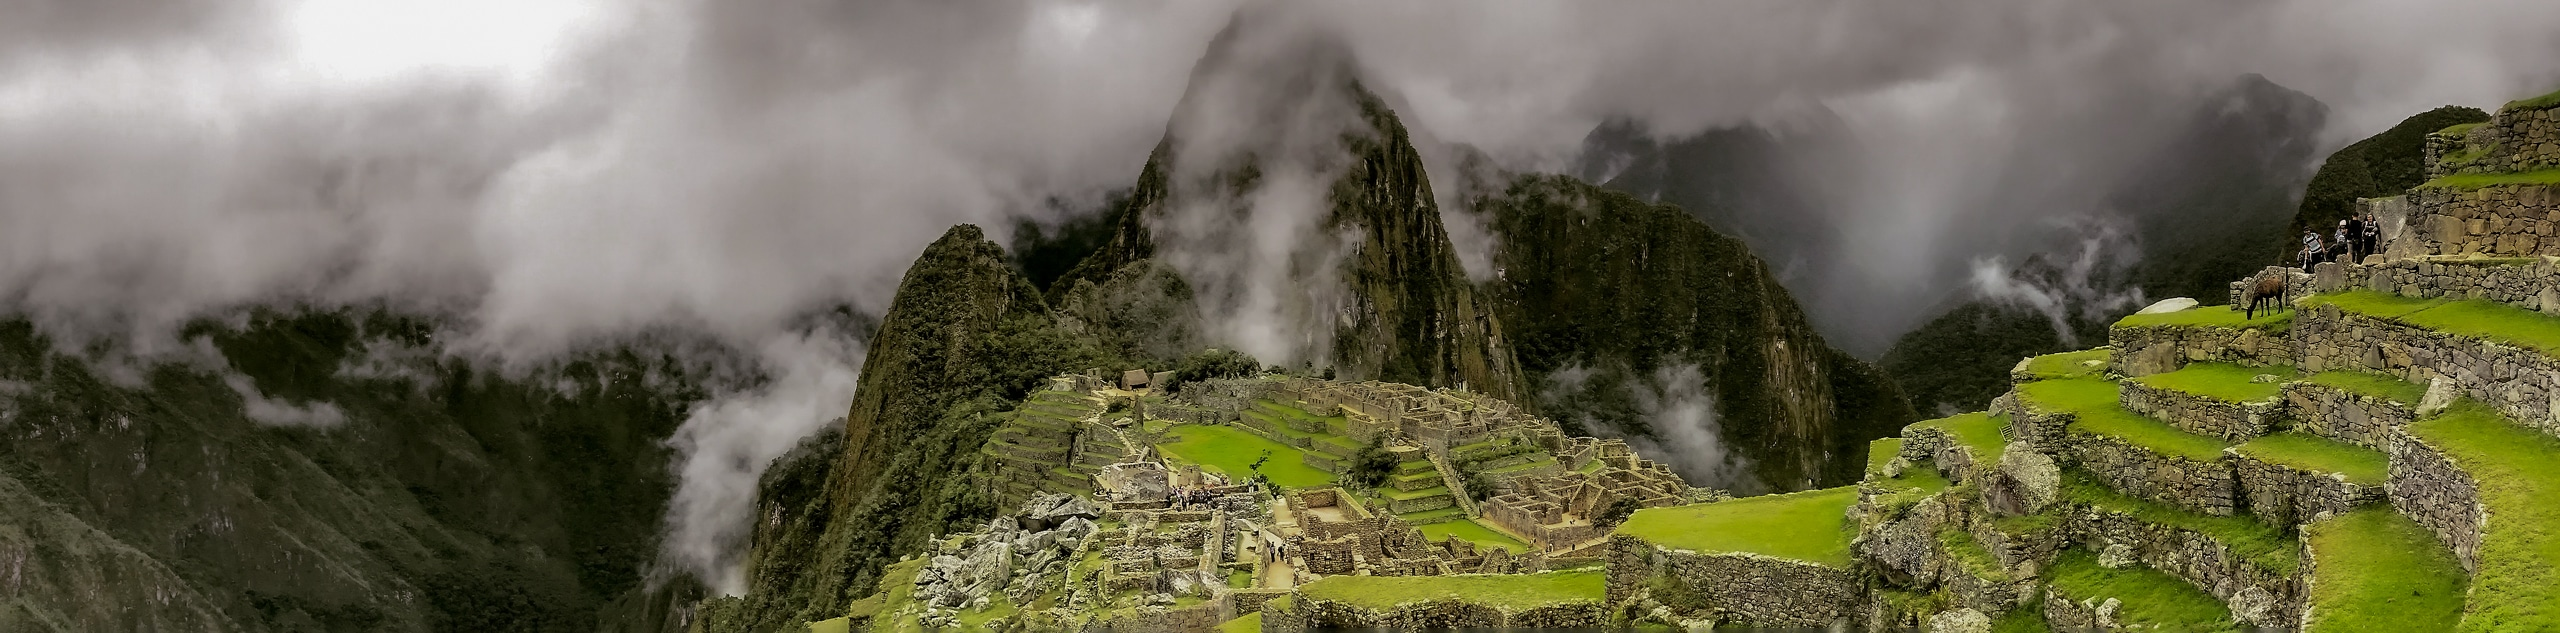 Machu Picchu: All Frequently Asked Questions and Fun Facts